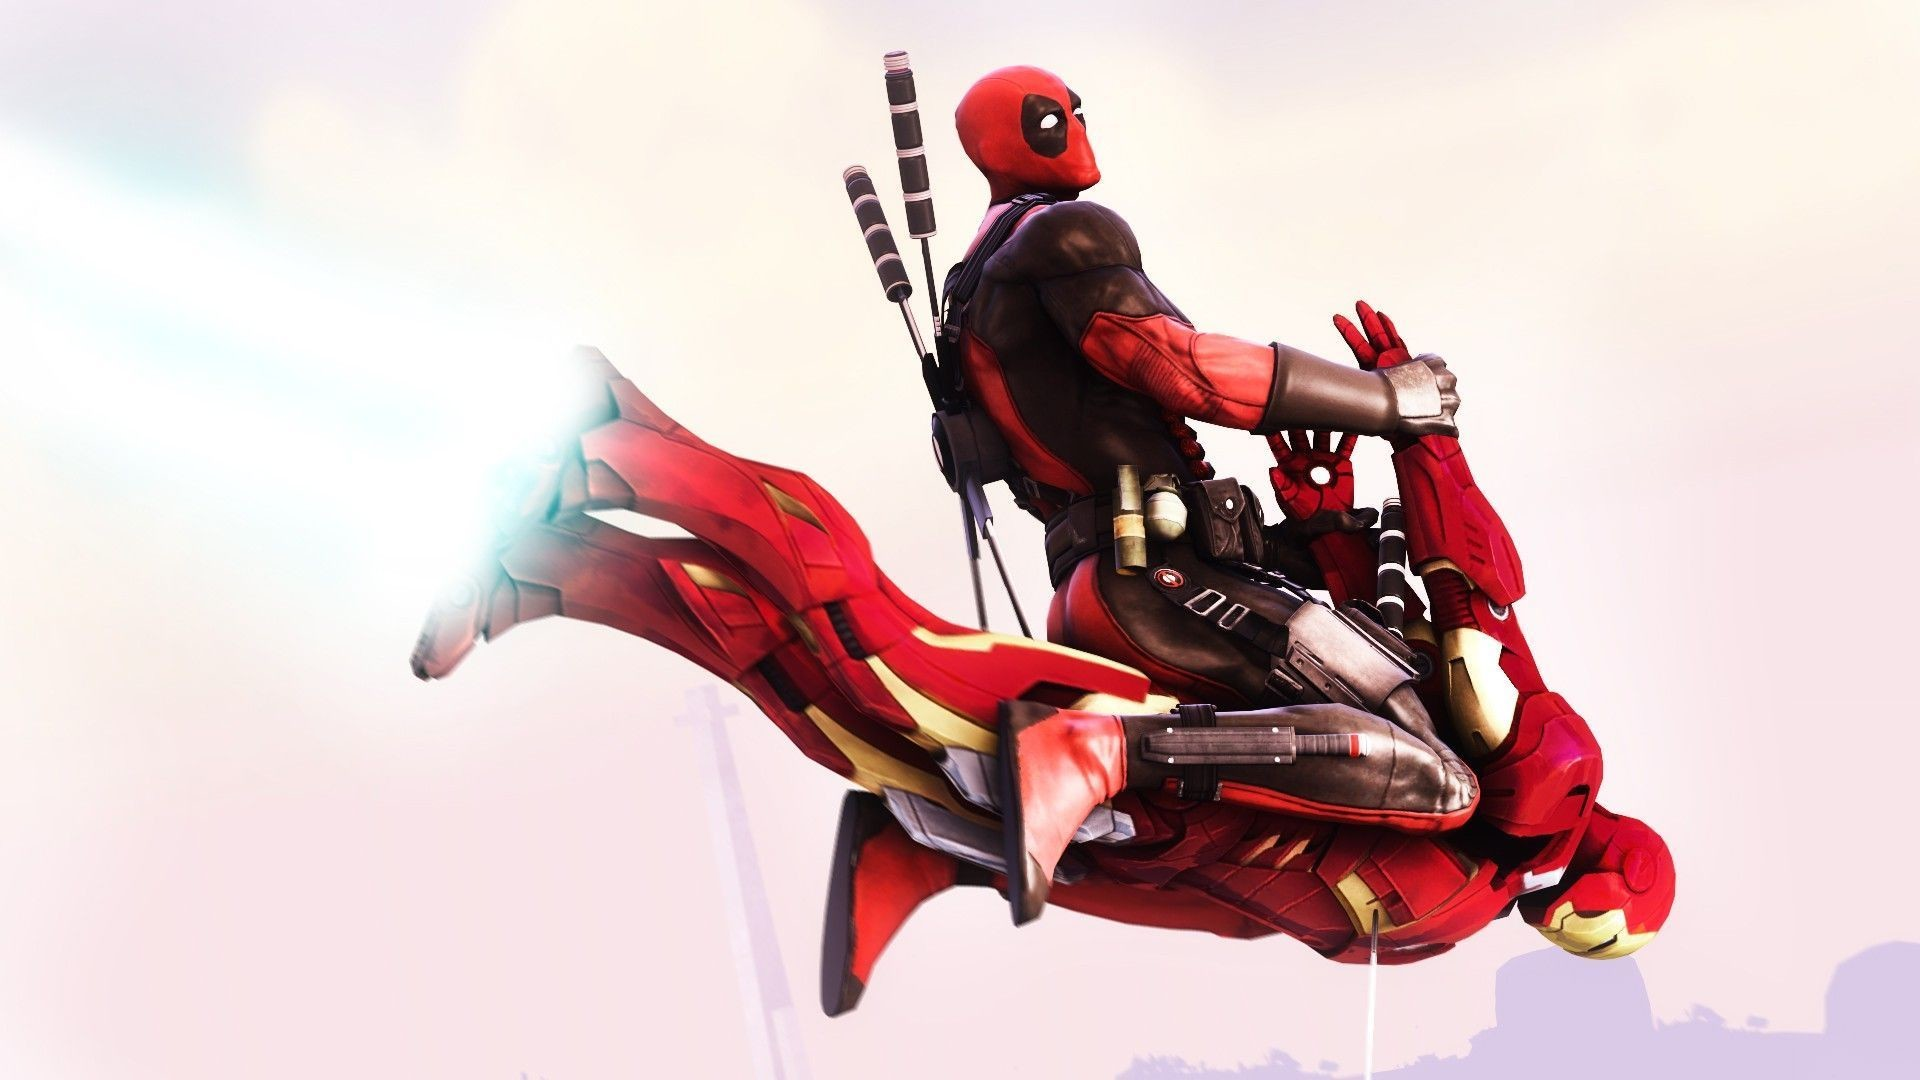 Res: 1920x1080, Deadpool Flying On Iron Man Funny Hd… The Bright Little Frog Wallpaper